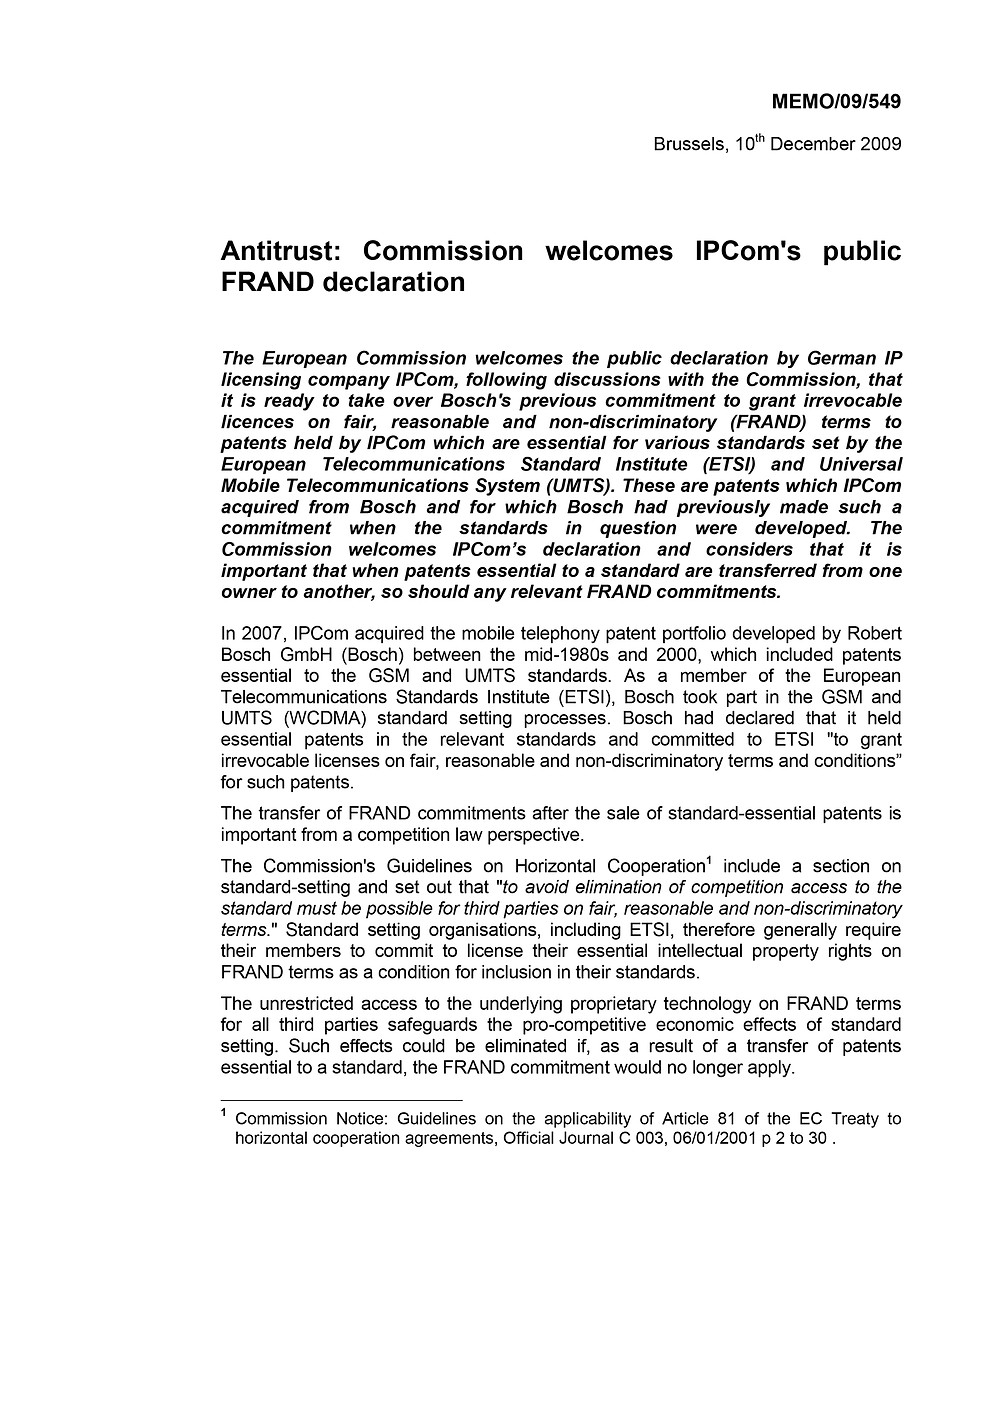 Antitrust: Commission welcomes IPCom's public FRAND declaration